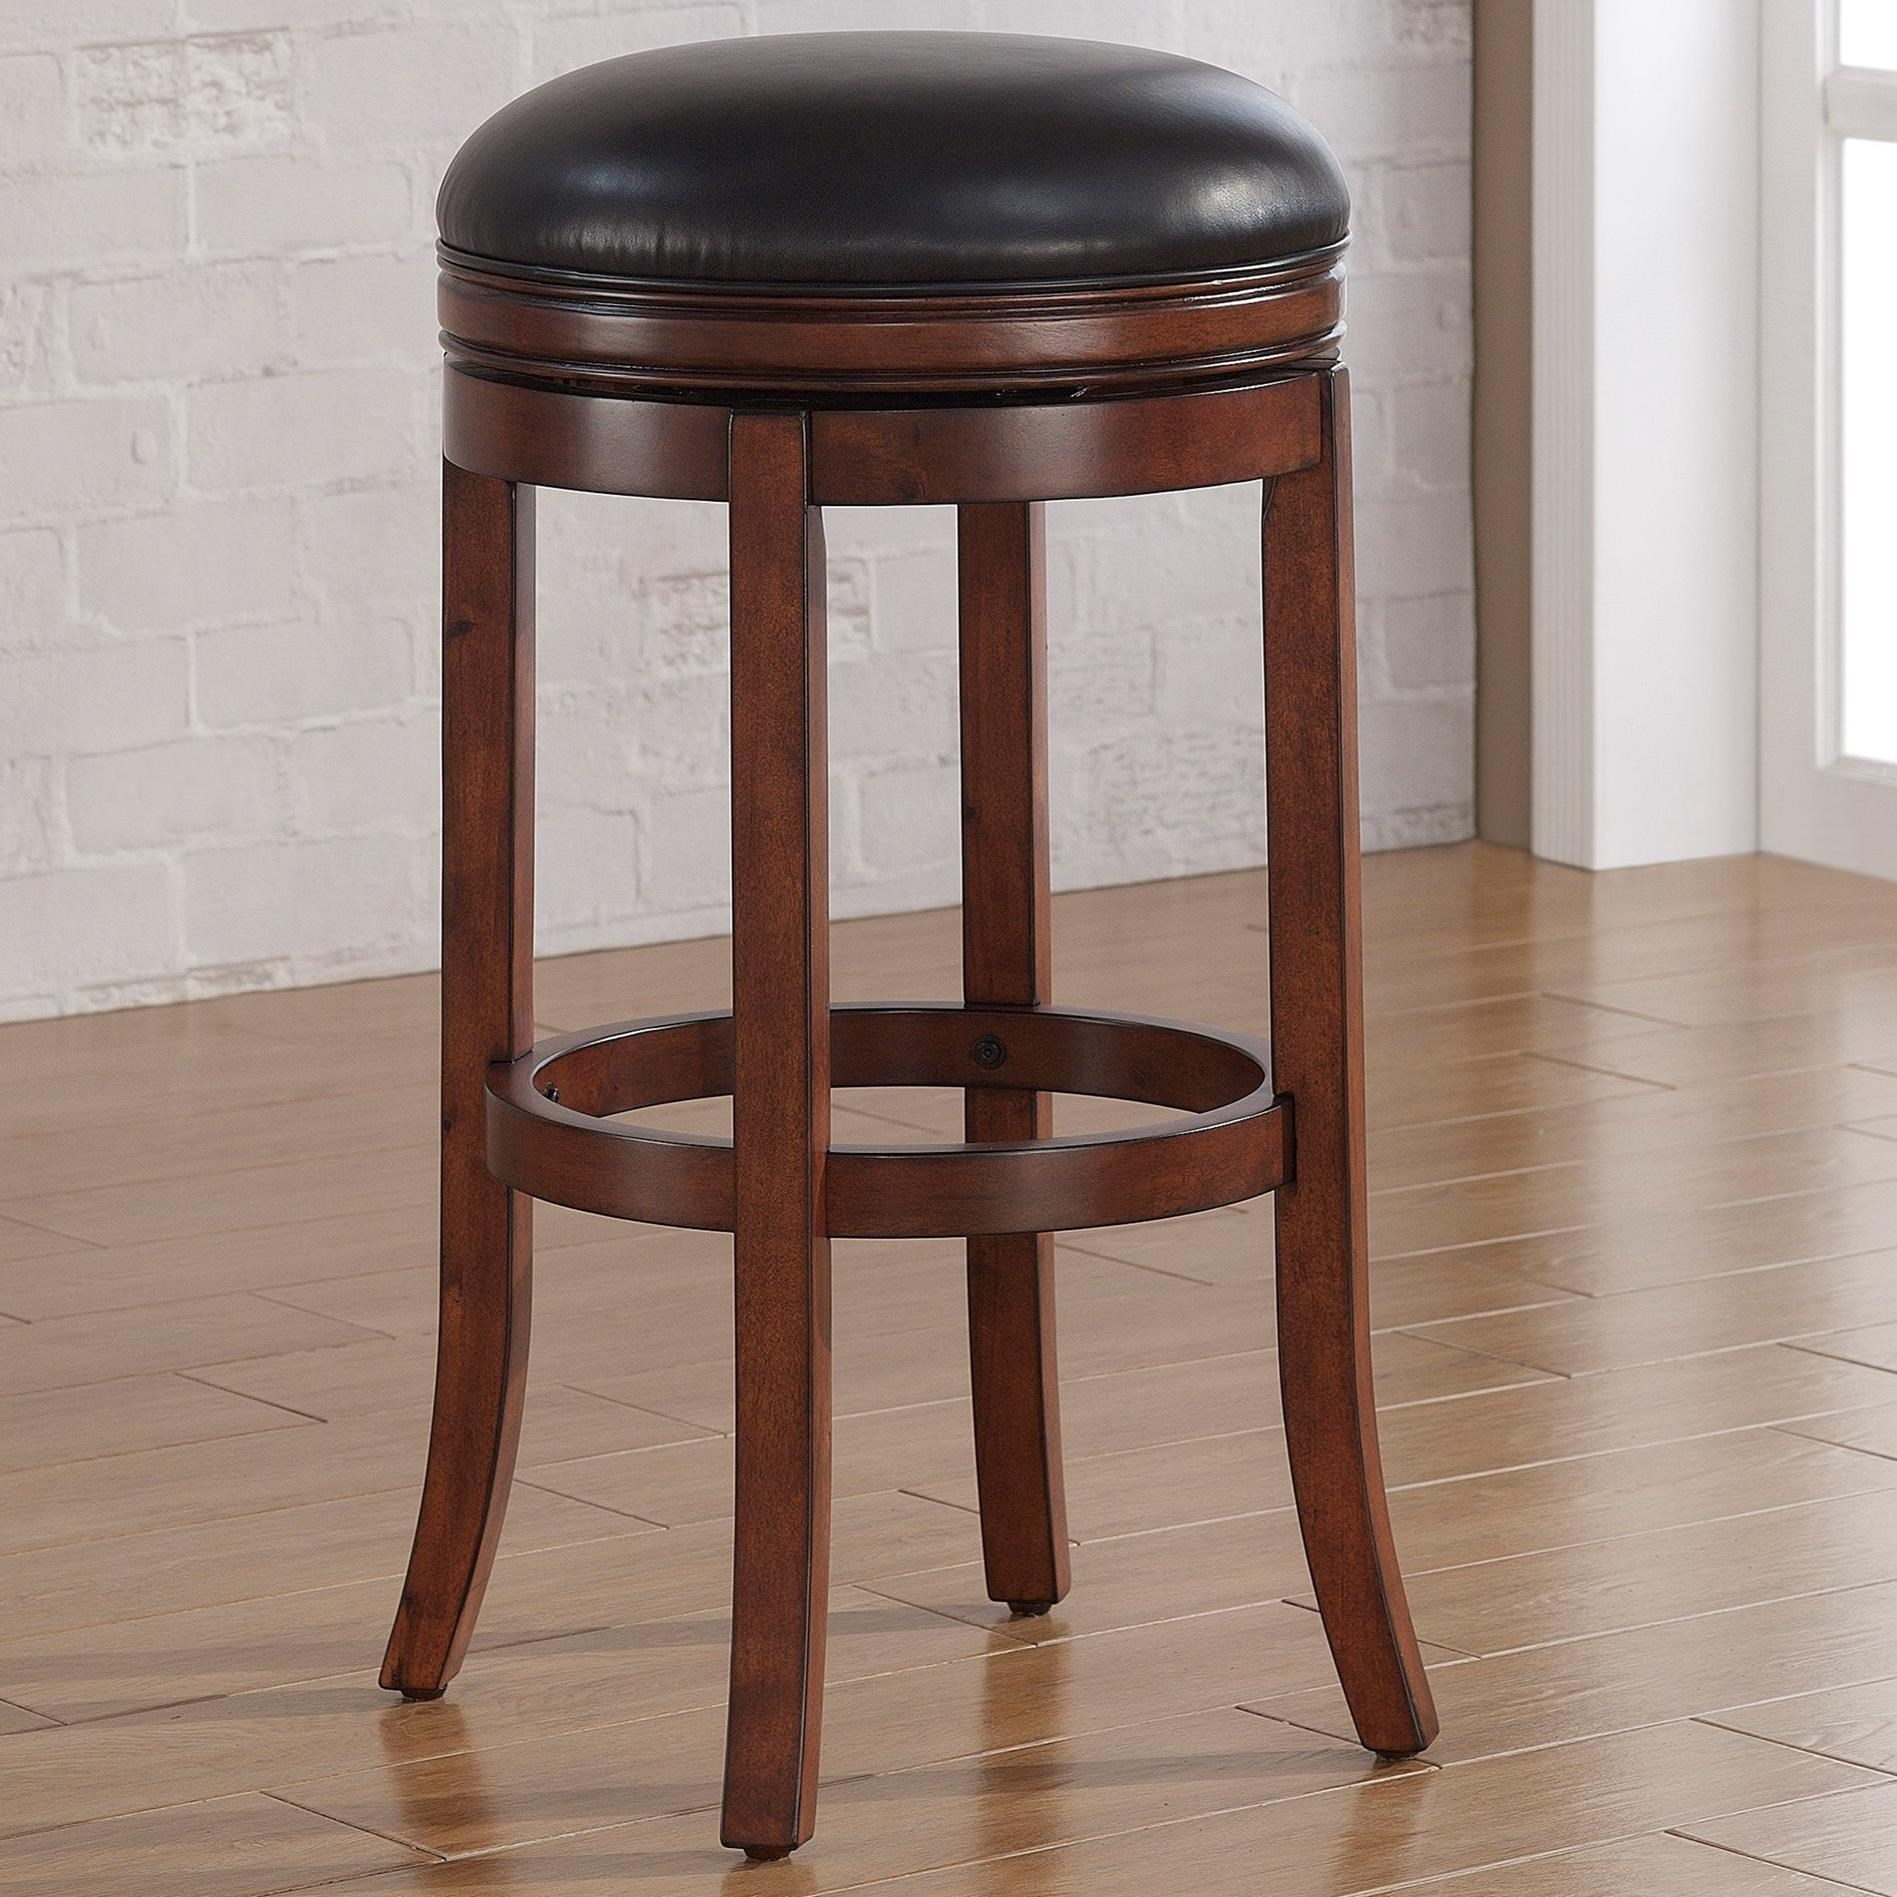 American Woodcrafters Barstools Backless Wood Stool - Item Number: B2-200-30L